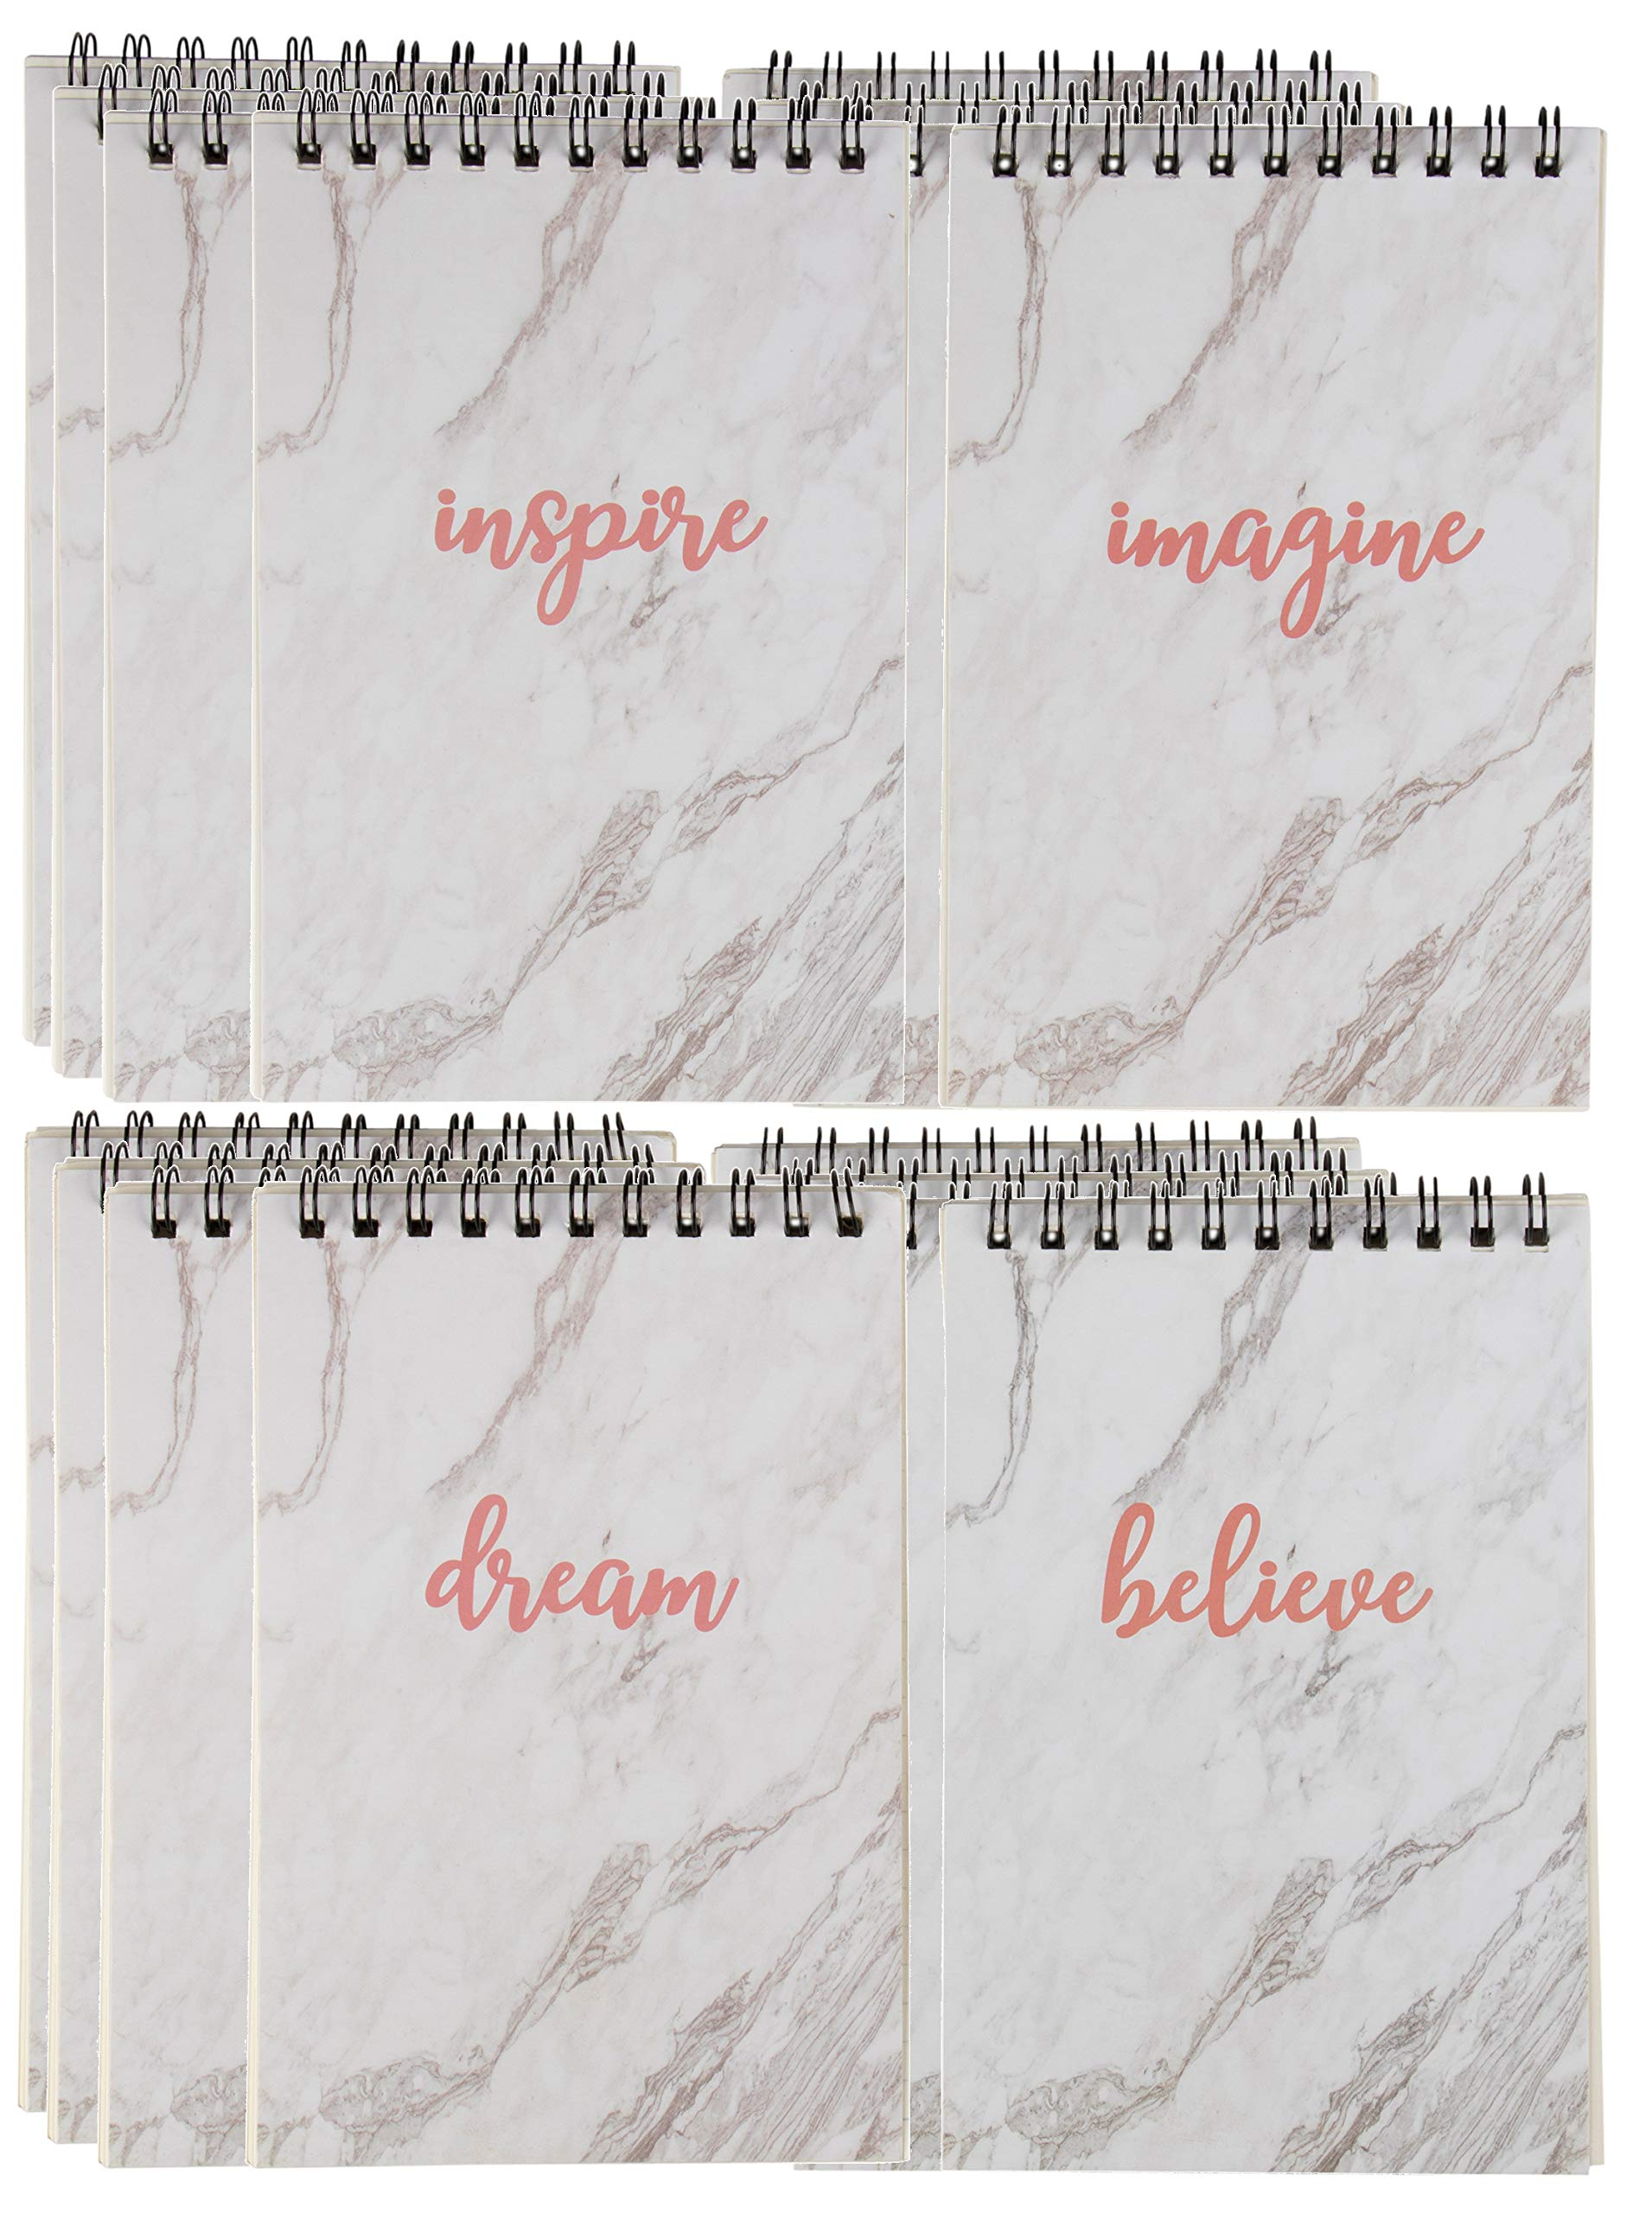 Spiral Notepad - 12-Pack Top Spiral Notebooks, Bulk Mini Spiral Notepads for Journaling, Note Taking, To-do Lists, Lined Paper, 4 Designs Inspirational Words in Marble Print, 4 x 6 Inches